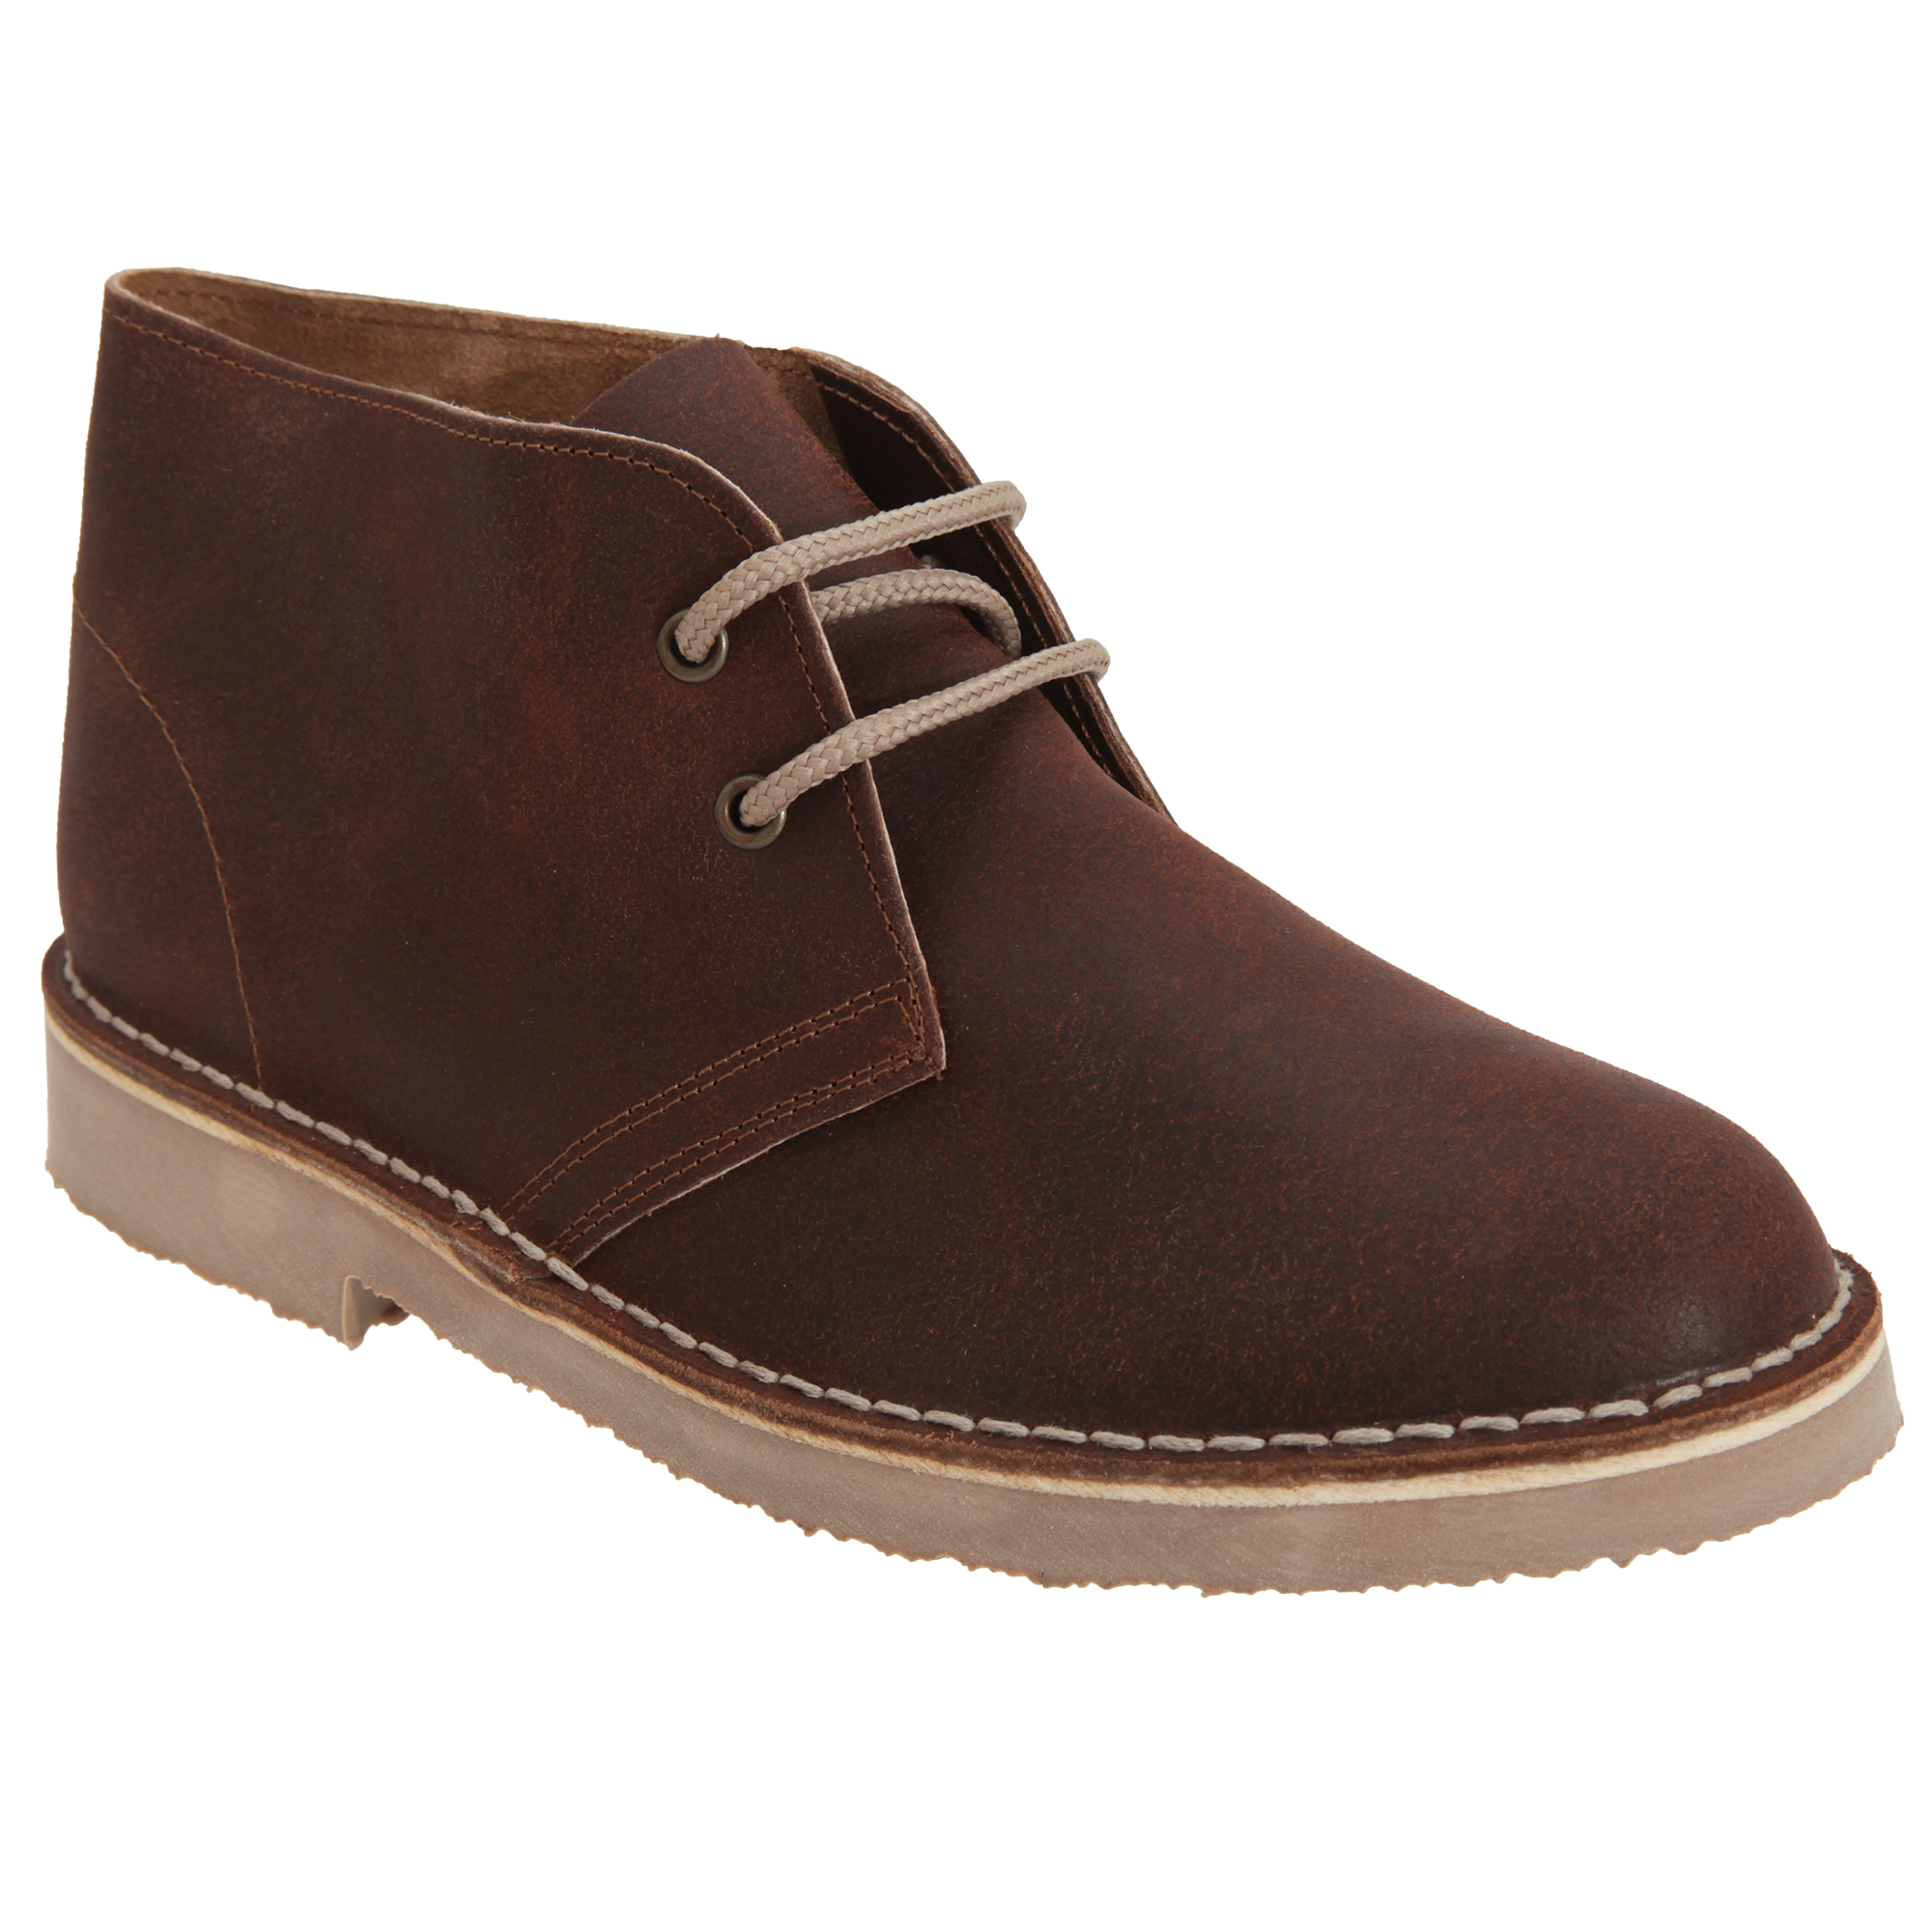 Roamers Adults Unisex Unlined Distressed Leather Desert Boots (7 UK) (Brown)